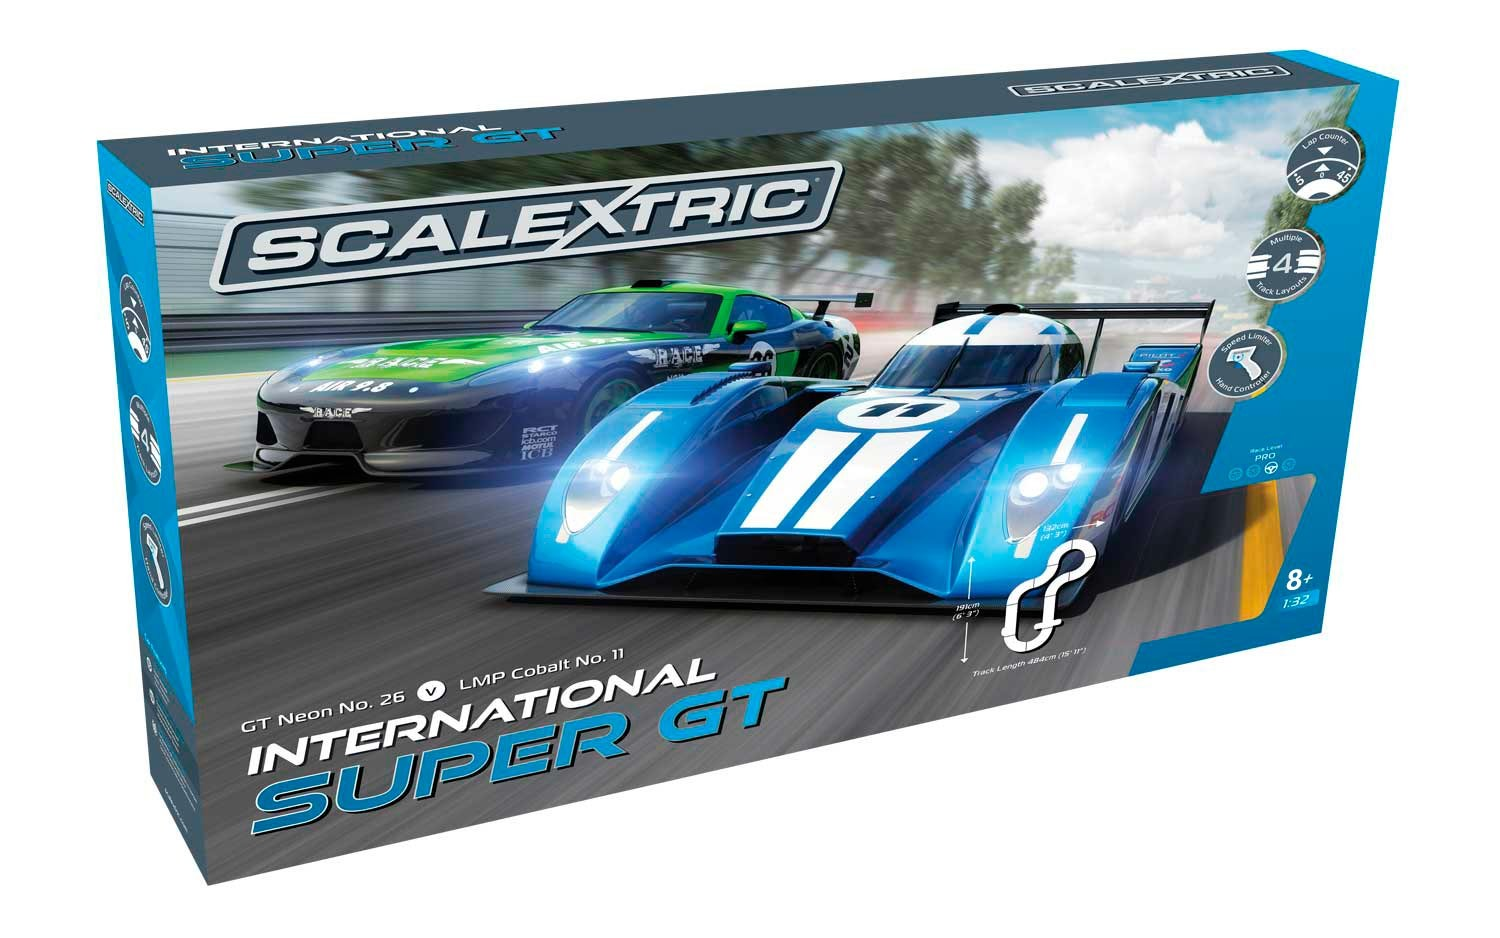 International Super GT 1/32 Race Set